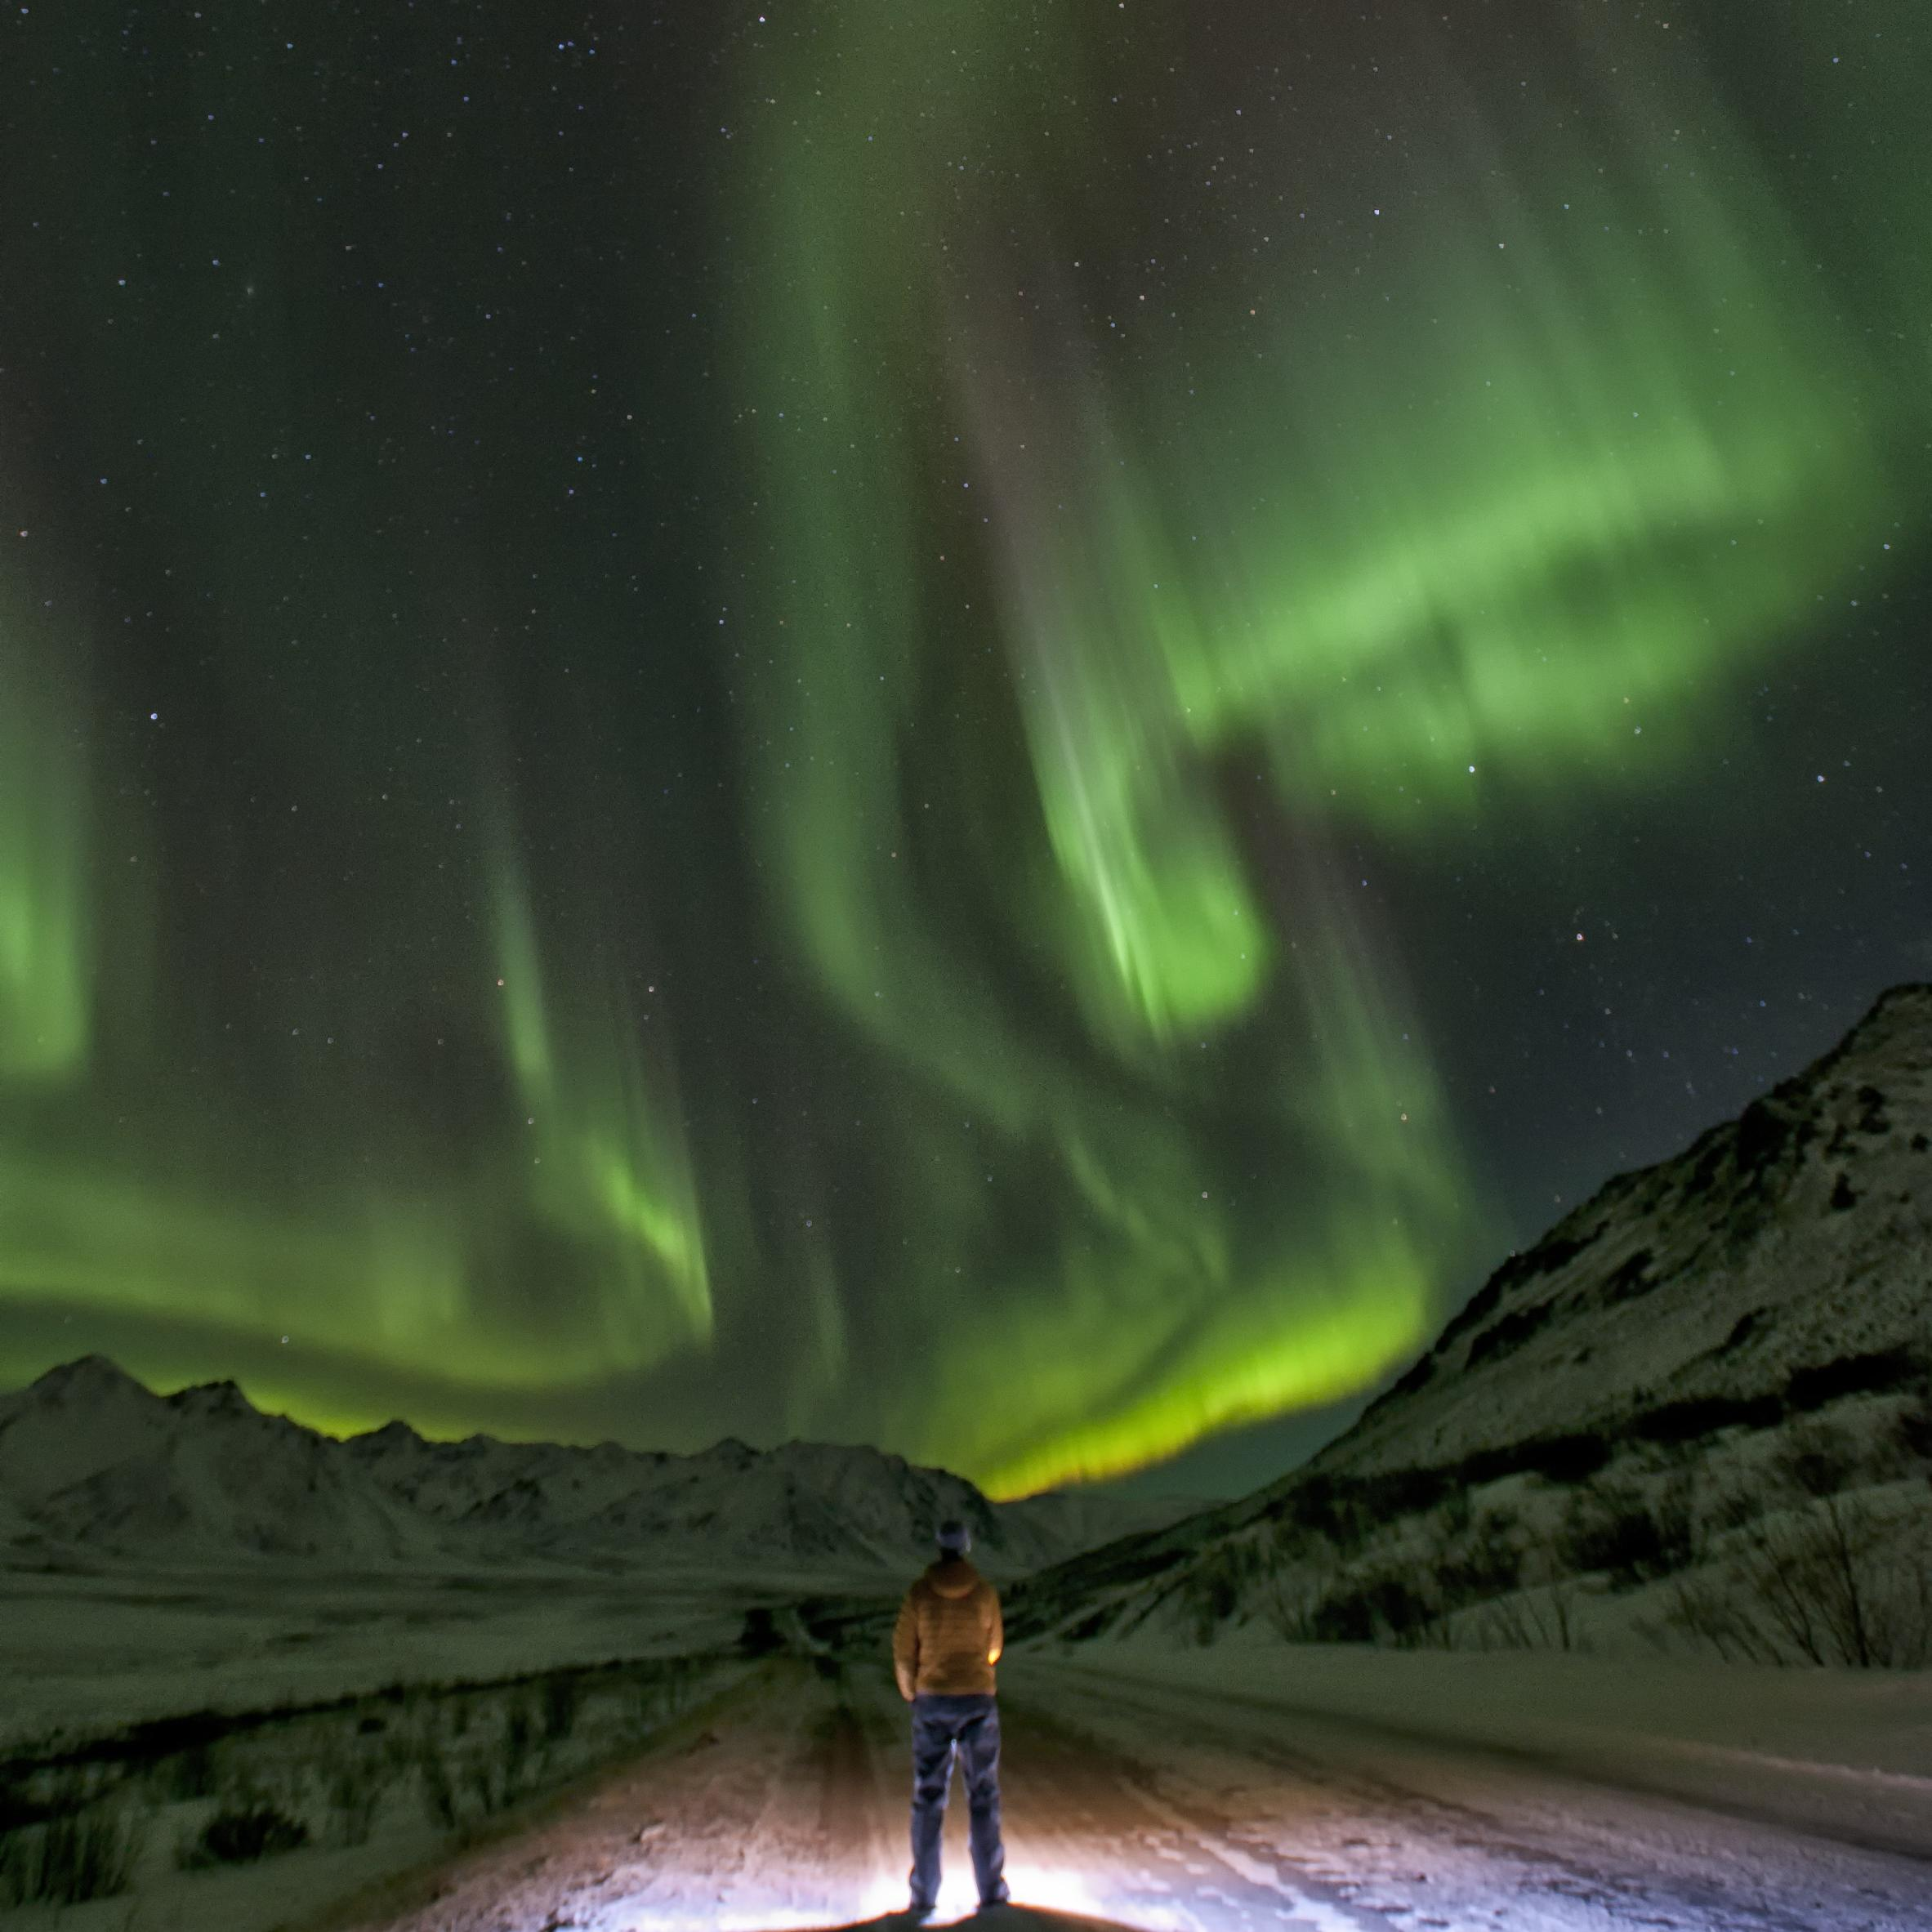 WHAT CAUSES THE AURORA?